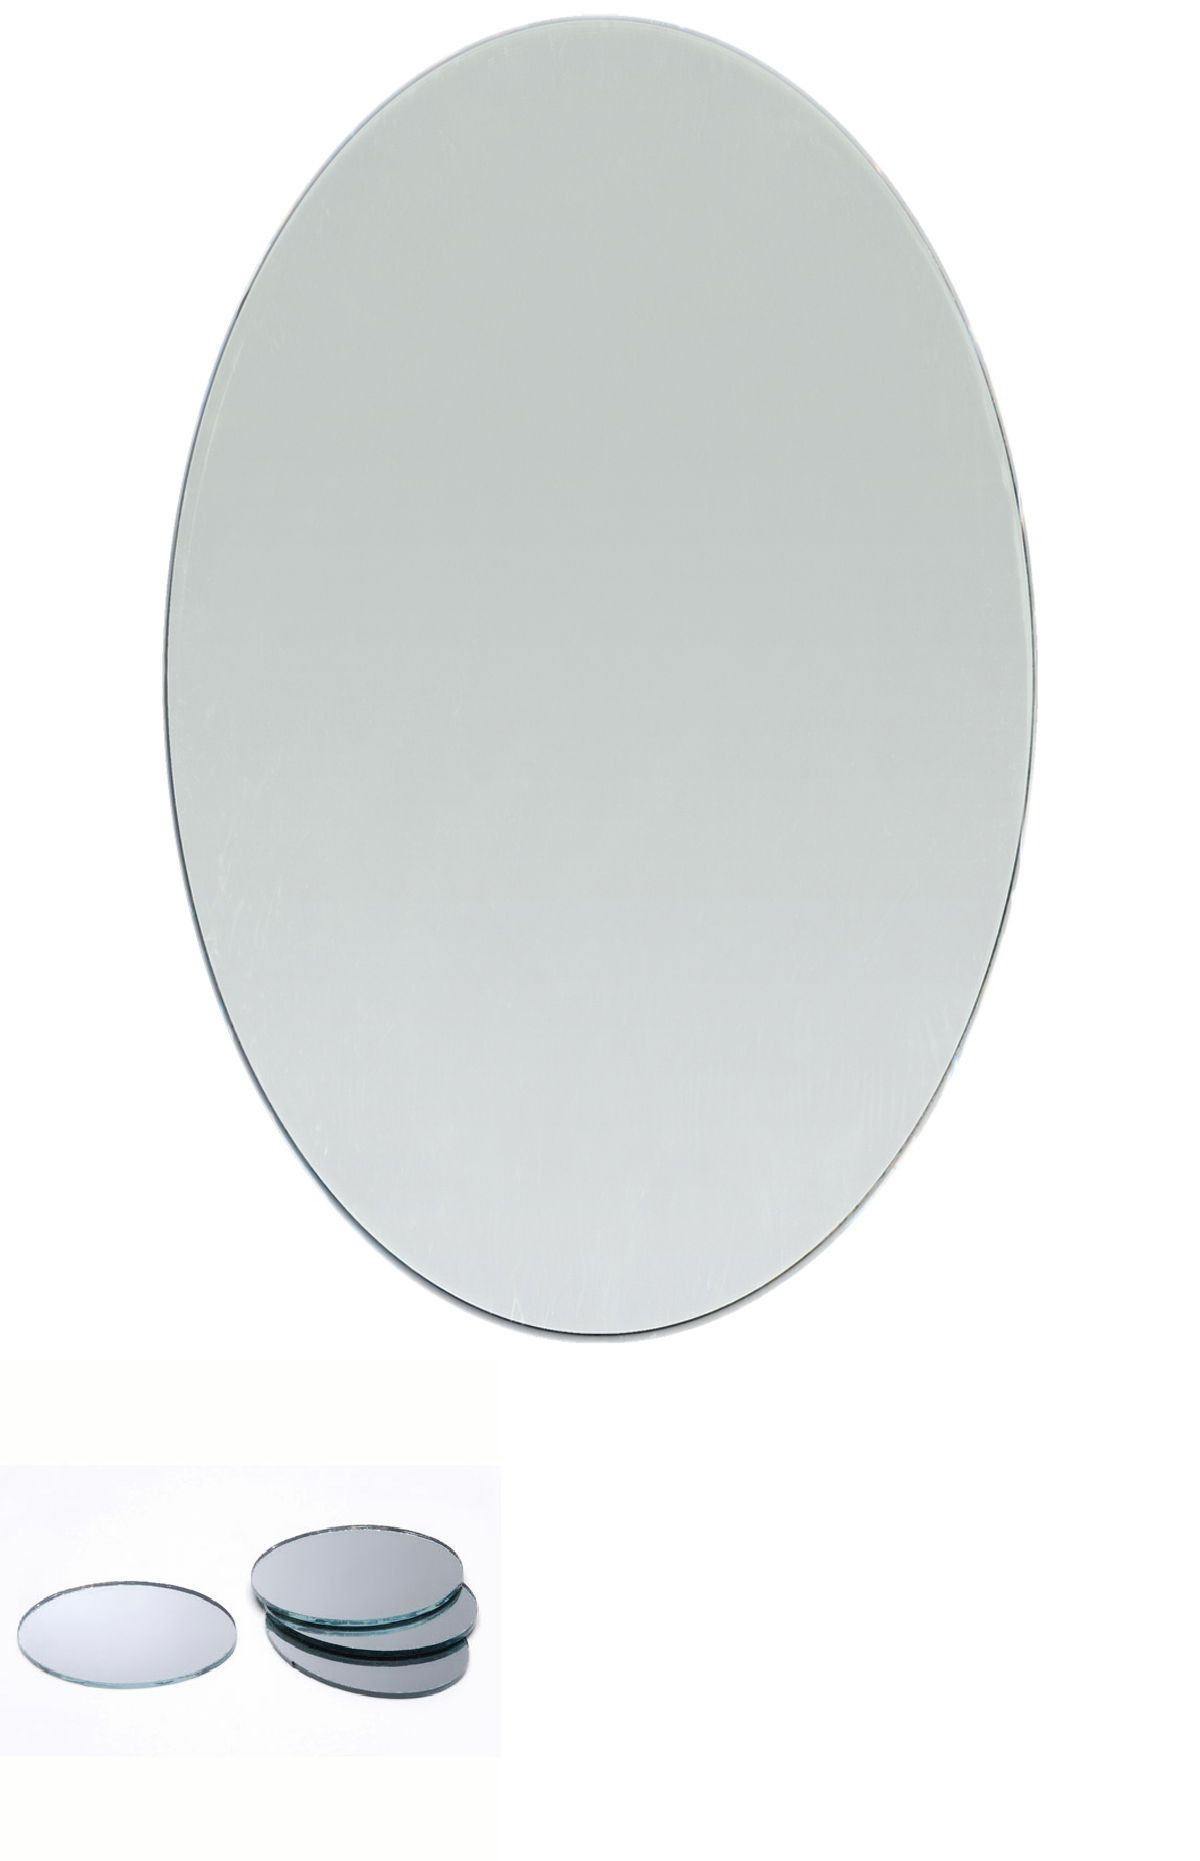 4 X 6 Inch Glass Craft Small Oval Mirrors Bulk 12 Pieces Mosaic Mirror Tiles 607963370470 Ebay Mosaic Tile Mirror Mirror Tiles Oval Mirror